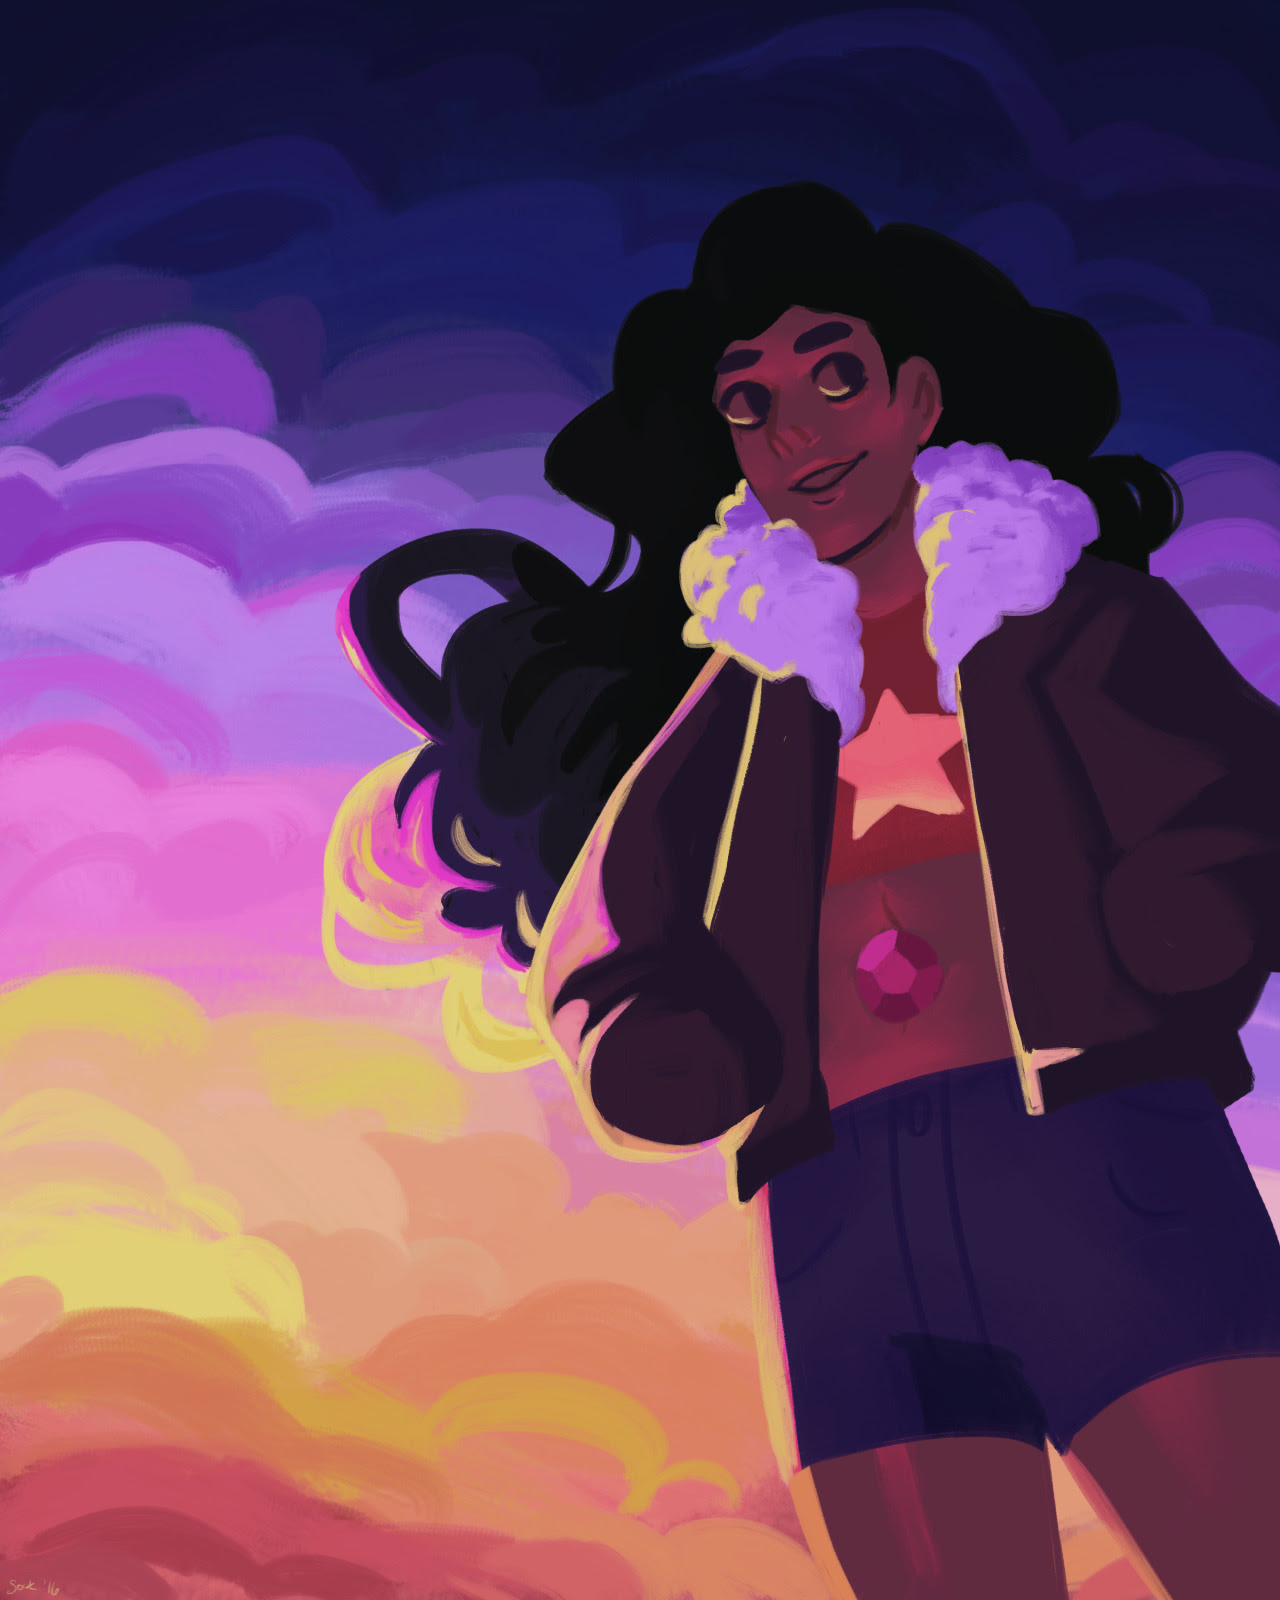 loved loved loved stevonnie in beach city drift!! available on redbubble